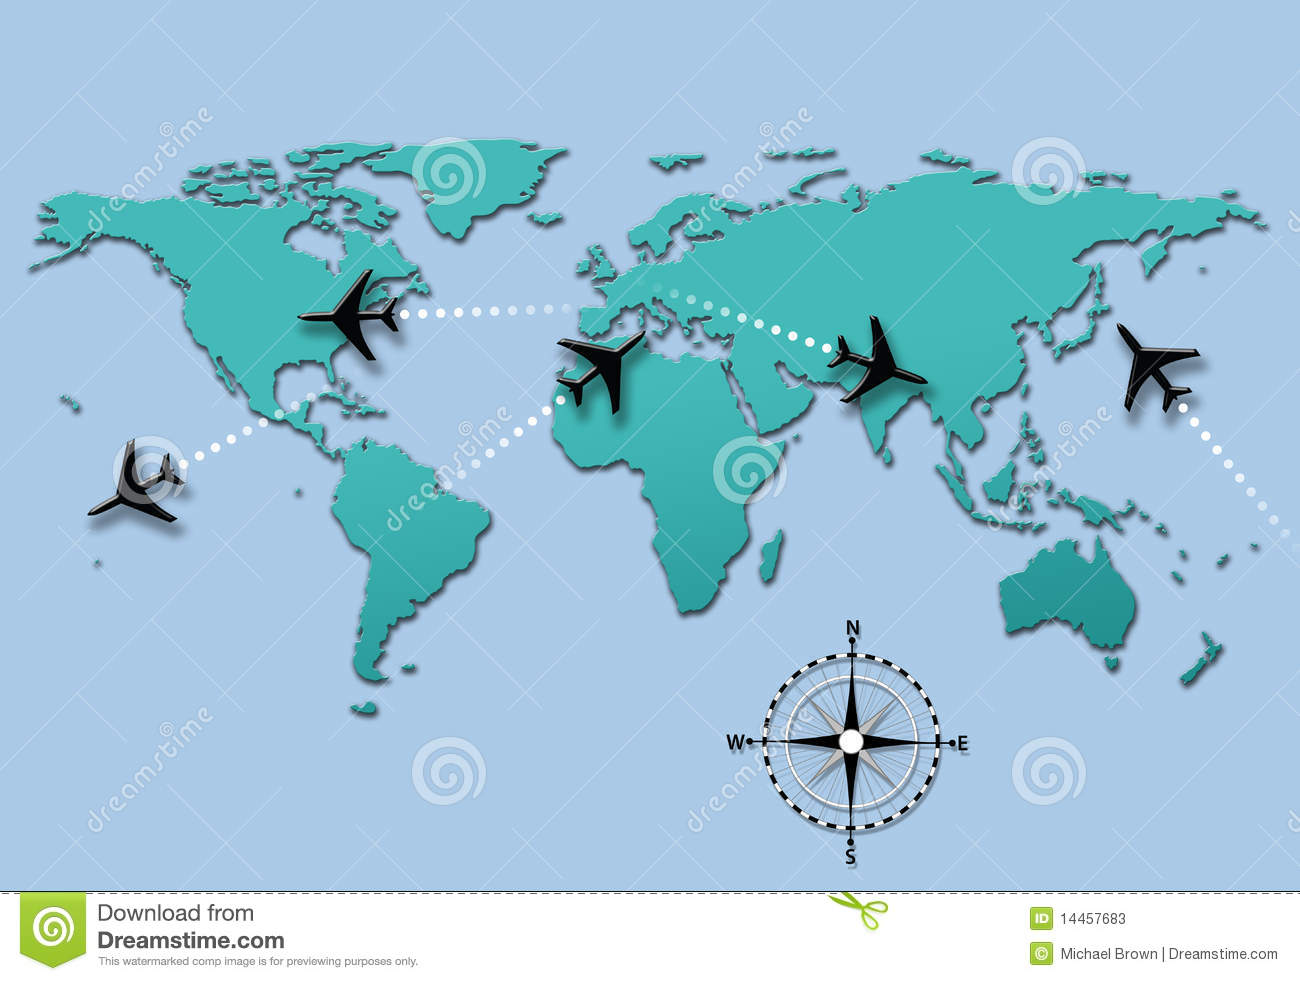 Airline travel plane flight paths on world map stock illustration airline travel plane flight paths on world map gumiabroncs Images